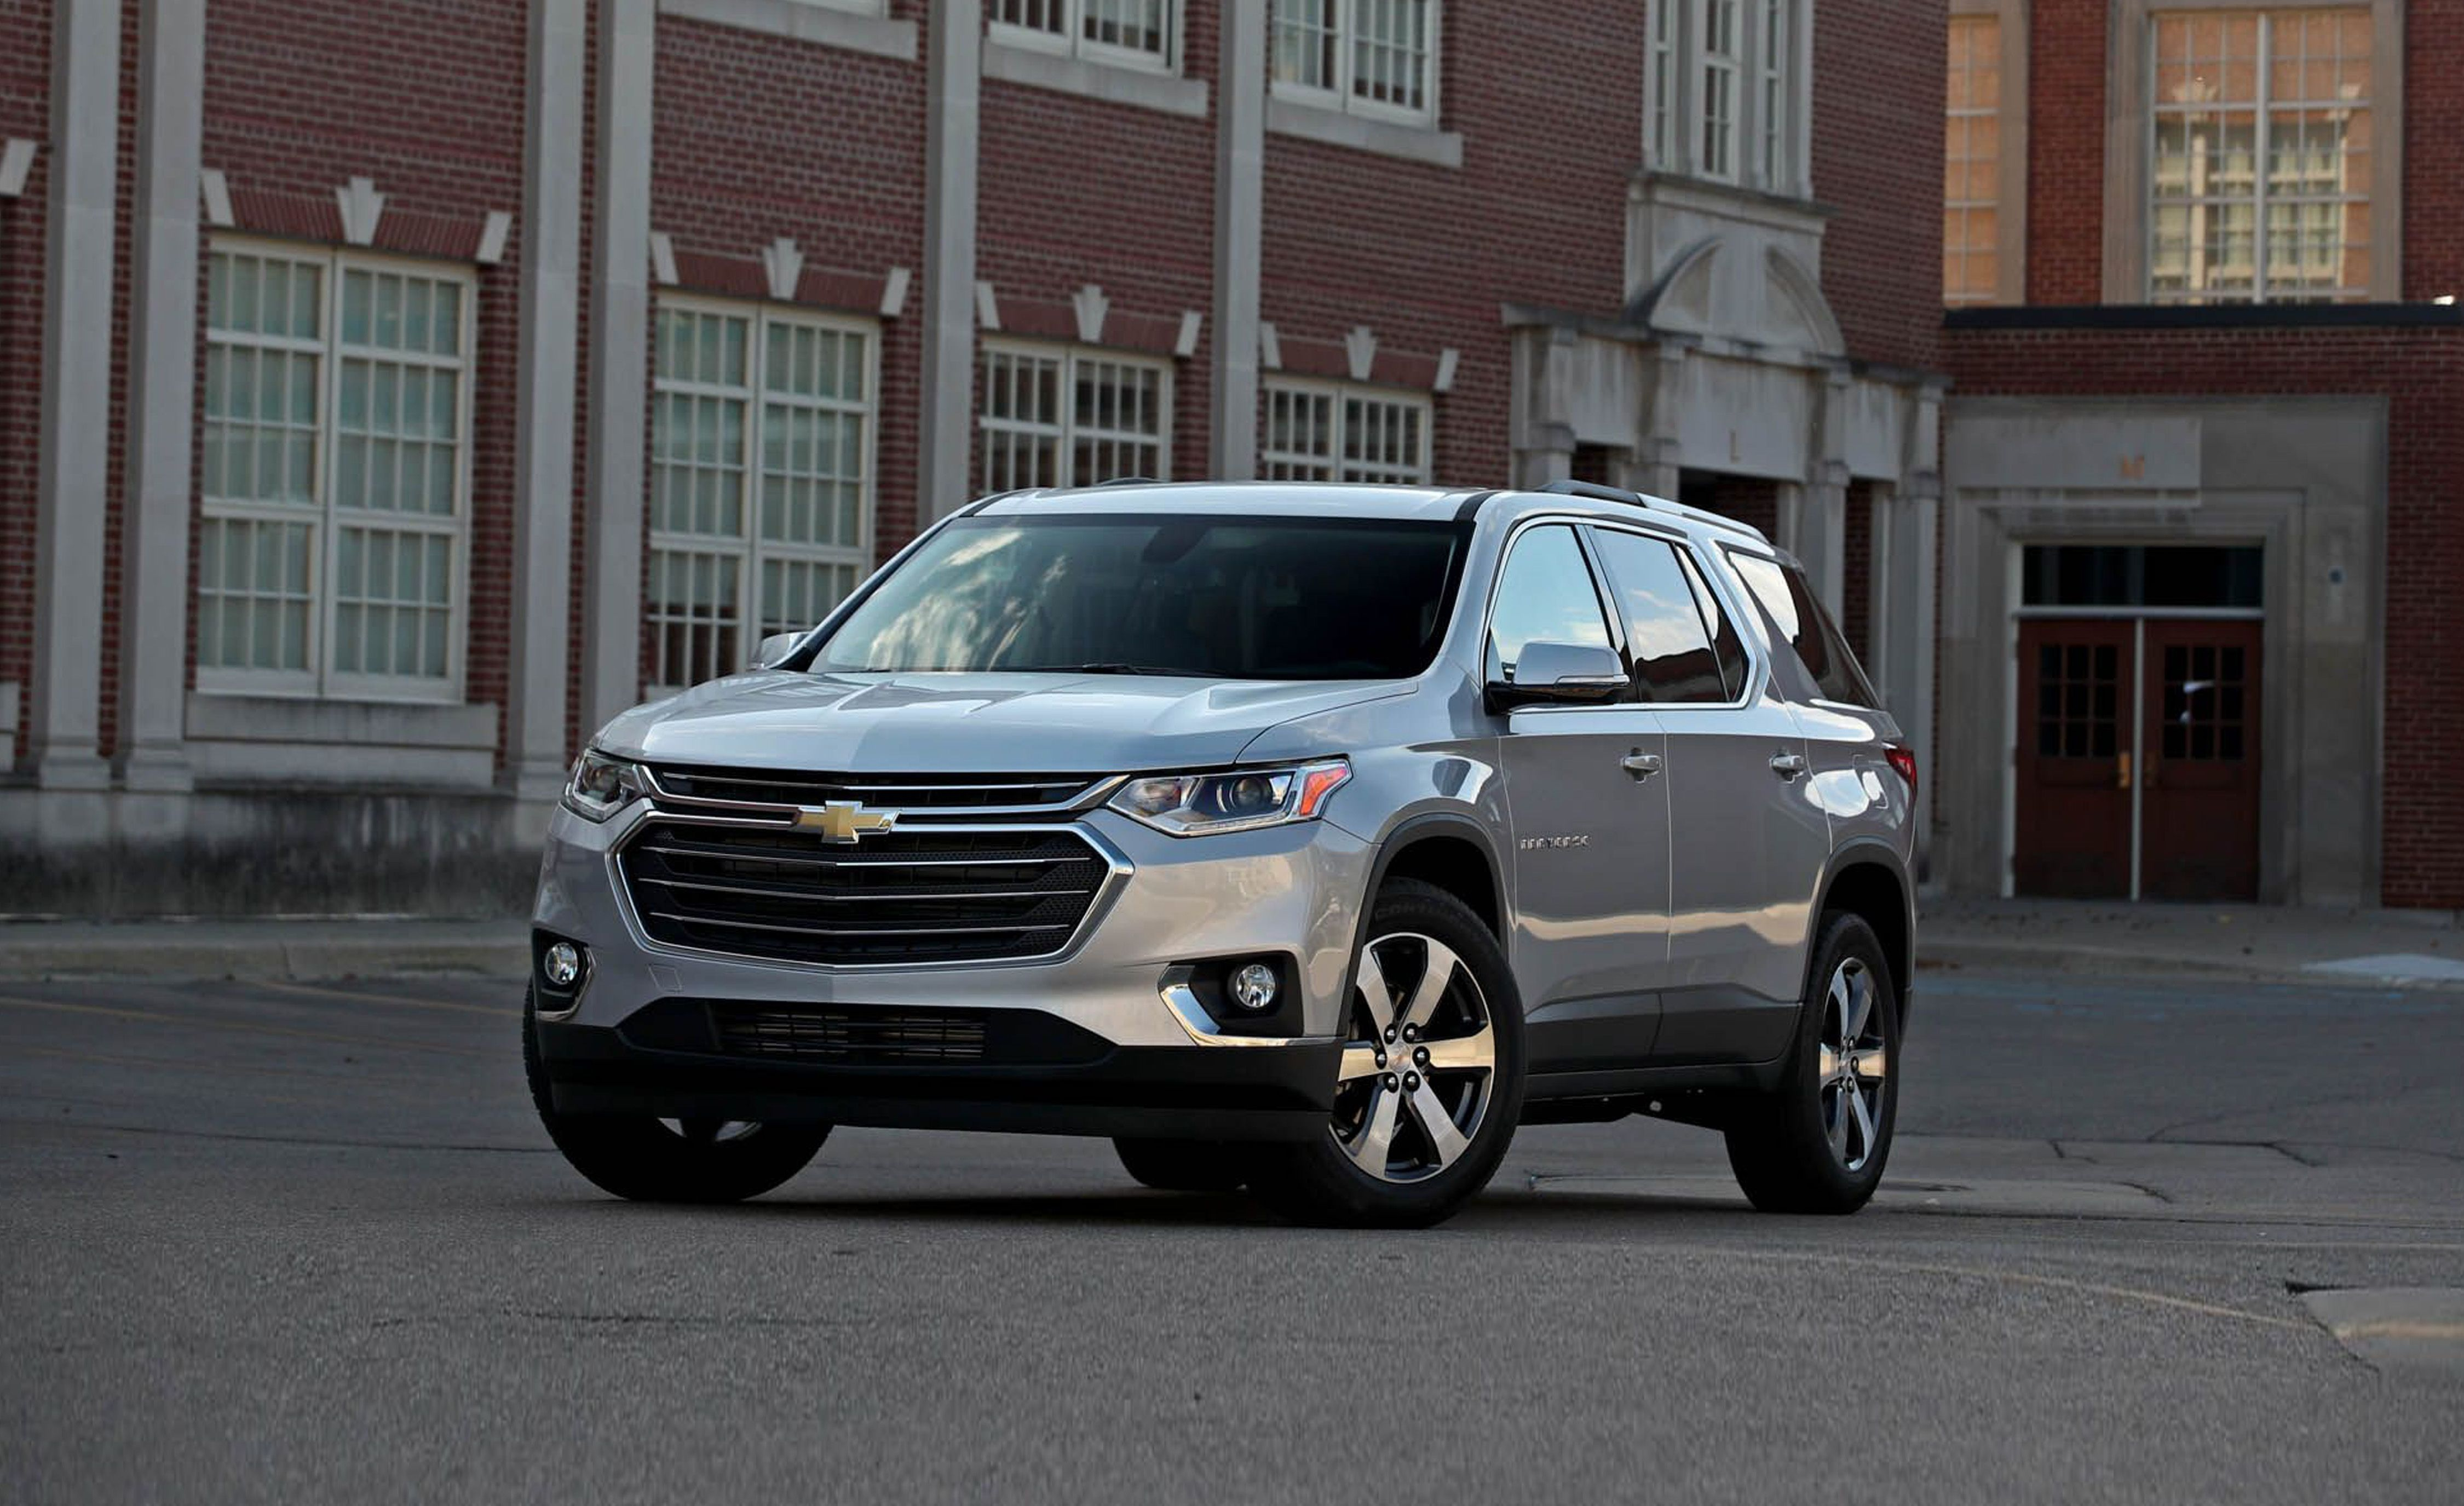 2019 Chevy Traverse Review Pricing And Specs